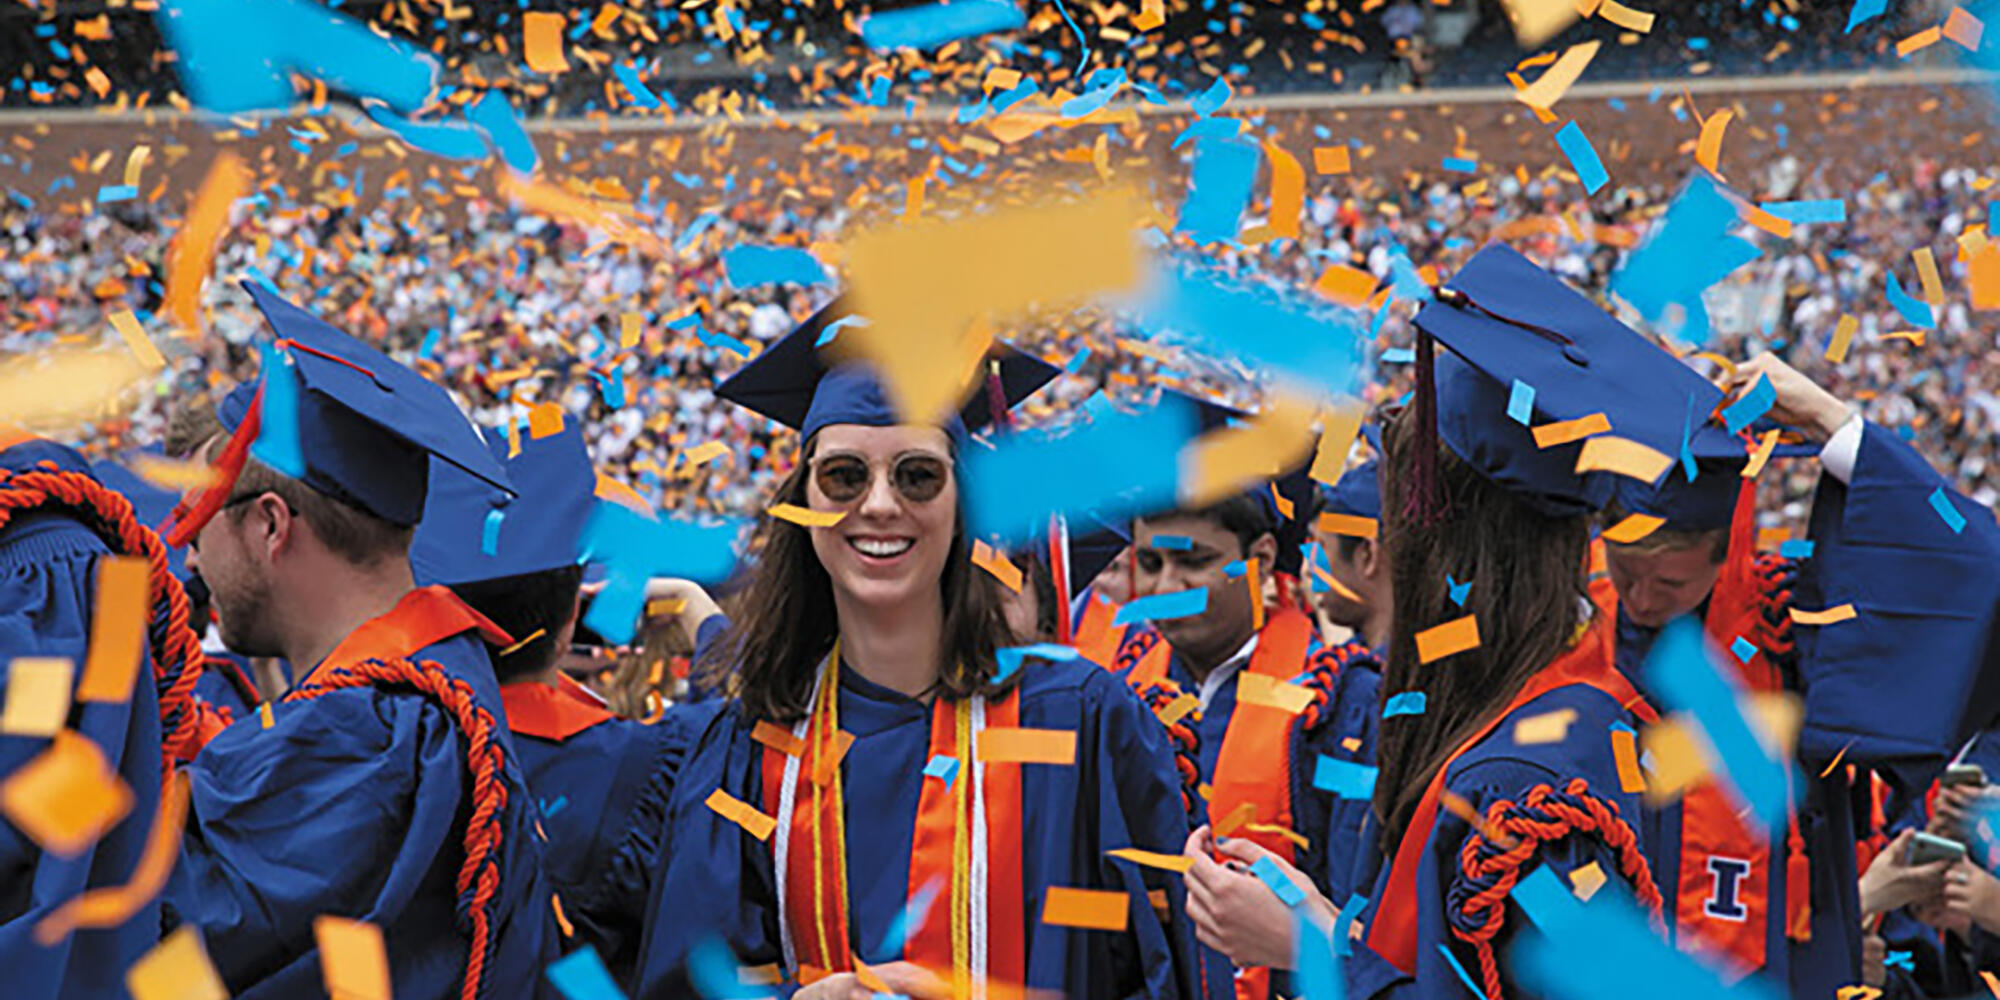 Graduation ceremony at University of Illinois.